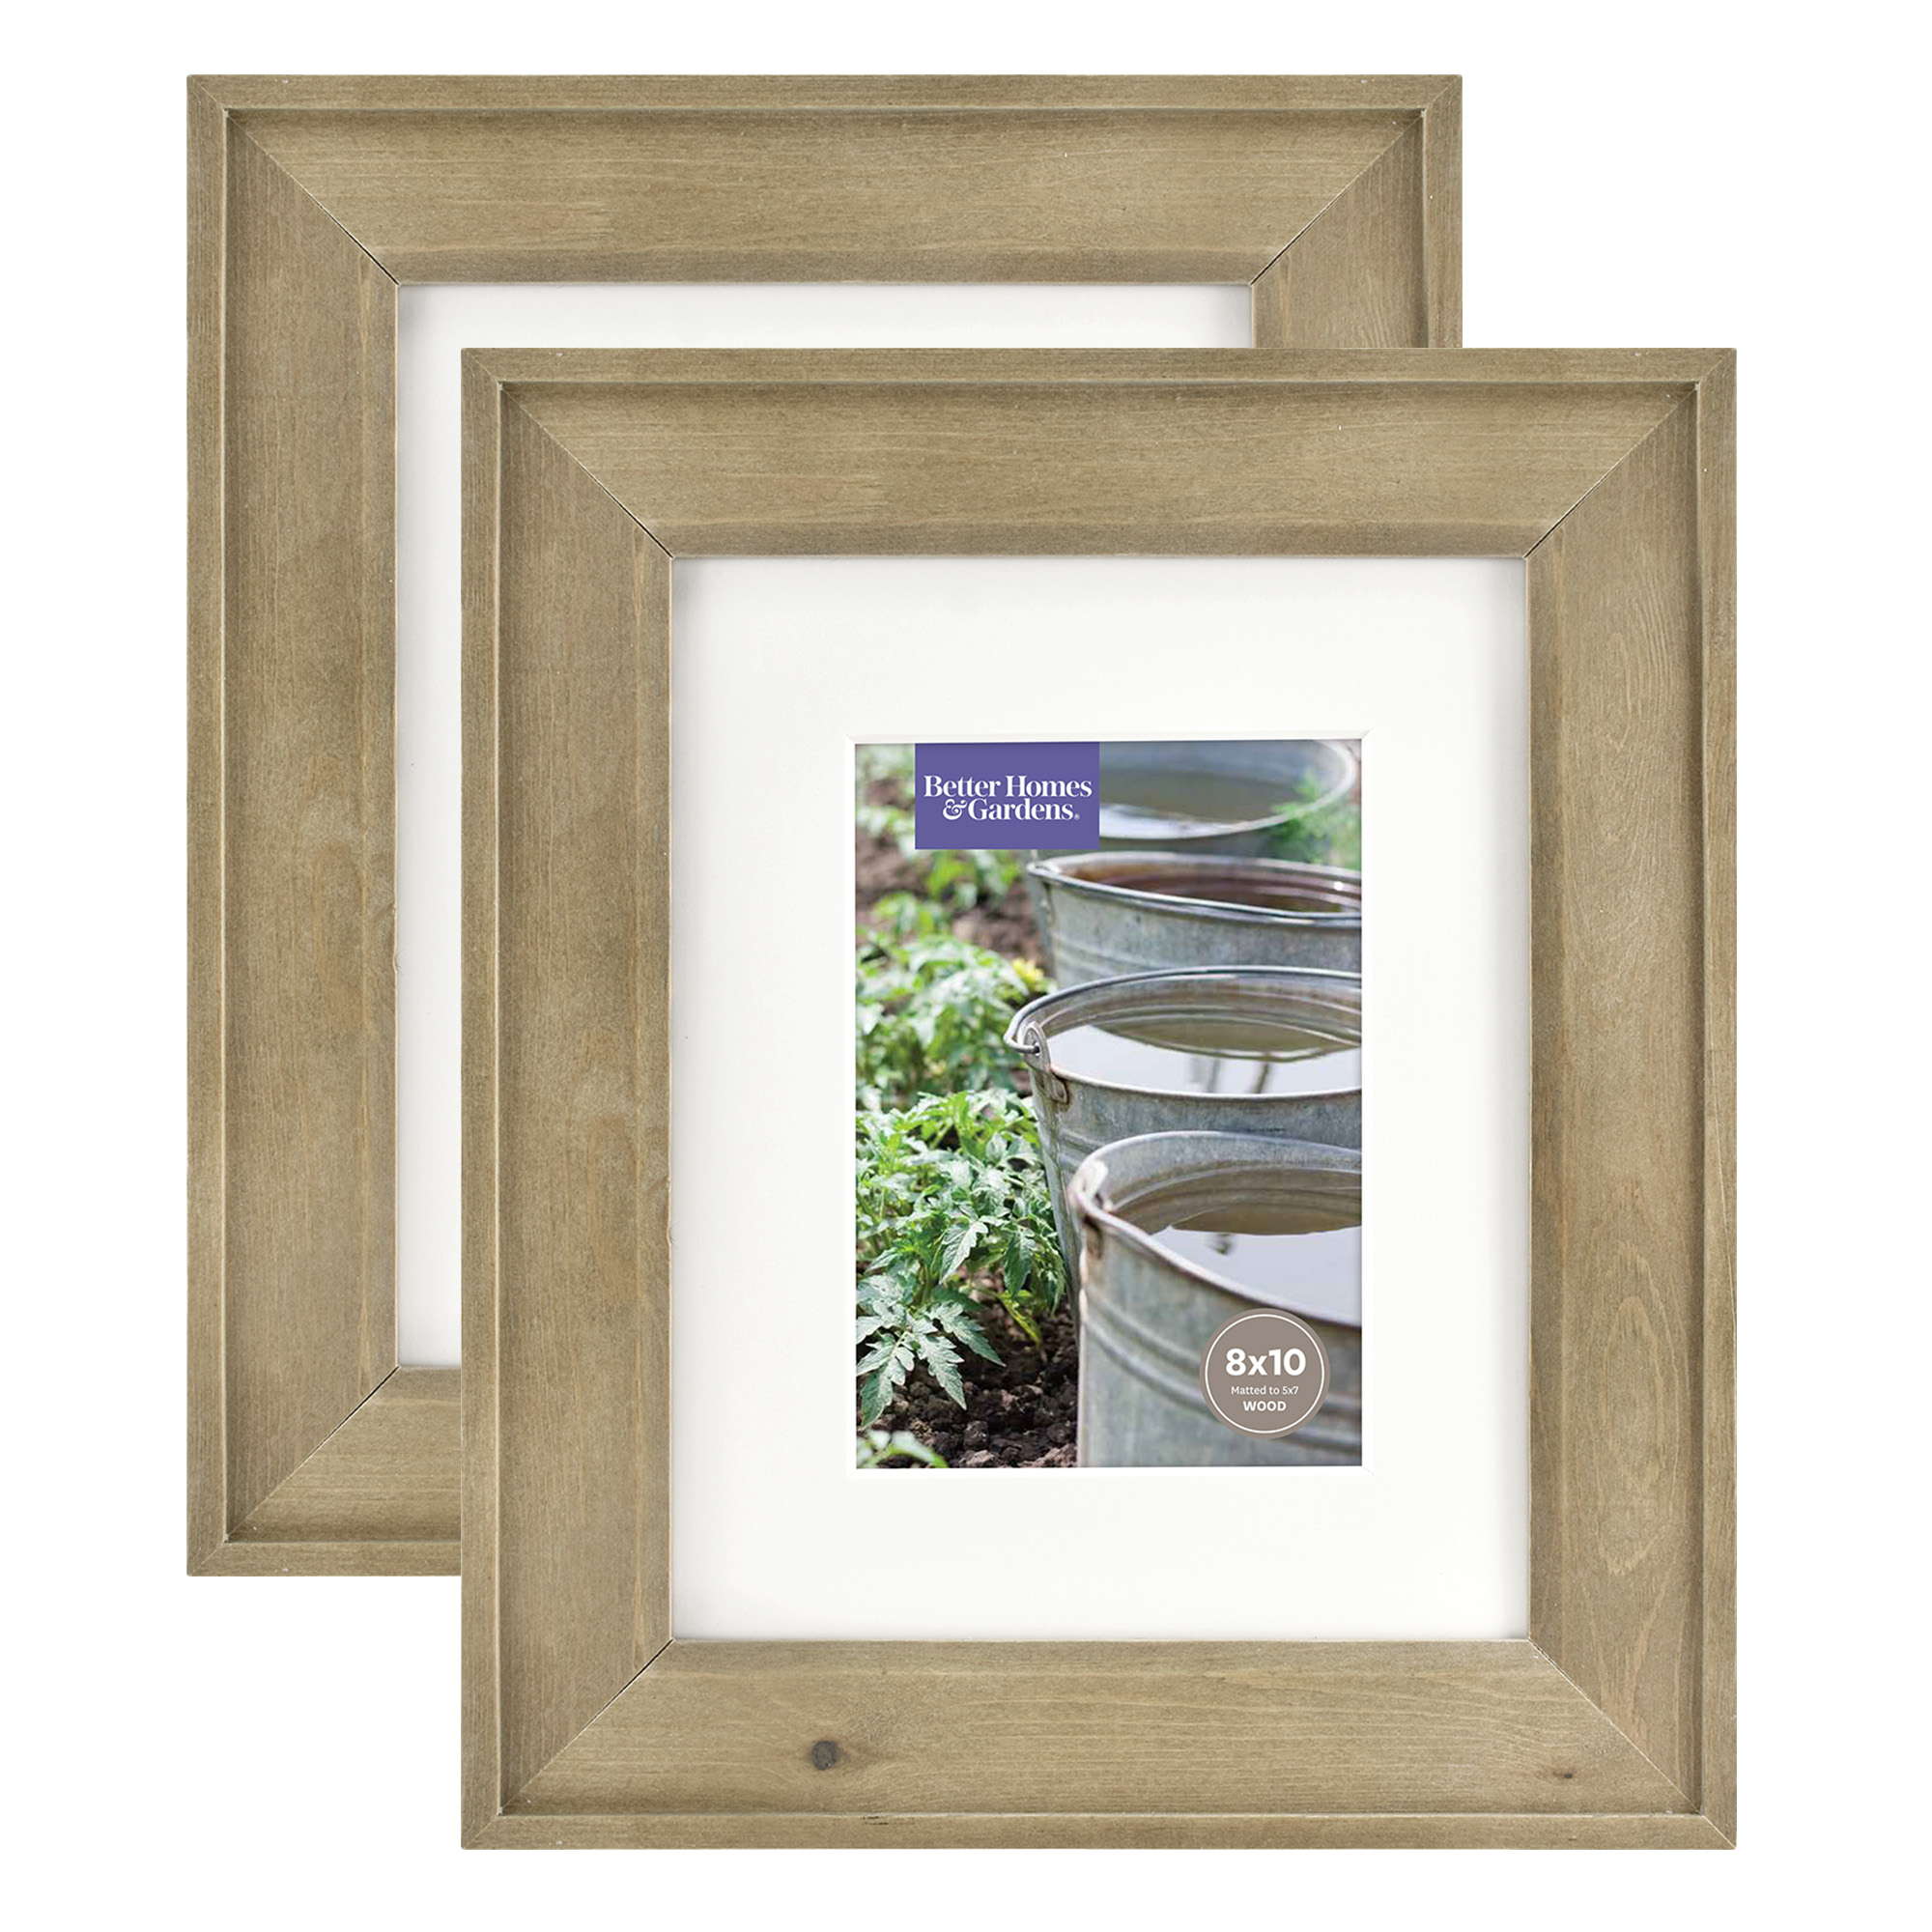 Better Homes & Gardens 8x10/5x7 Rustic Wood Picture Frame, 2pk